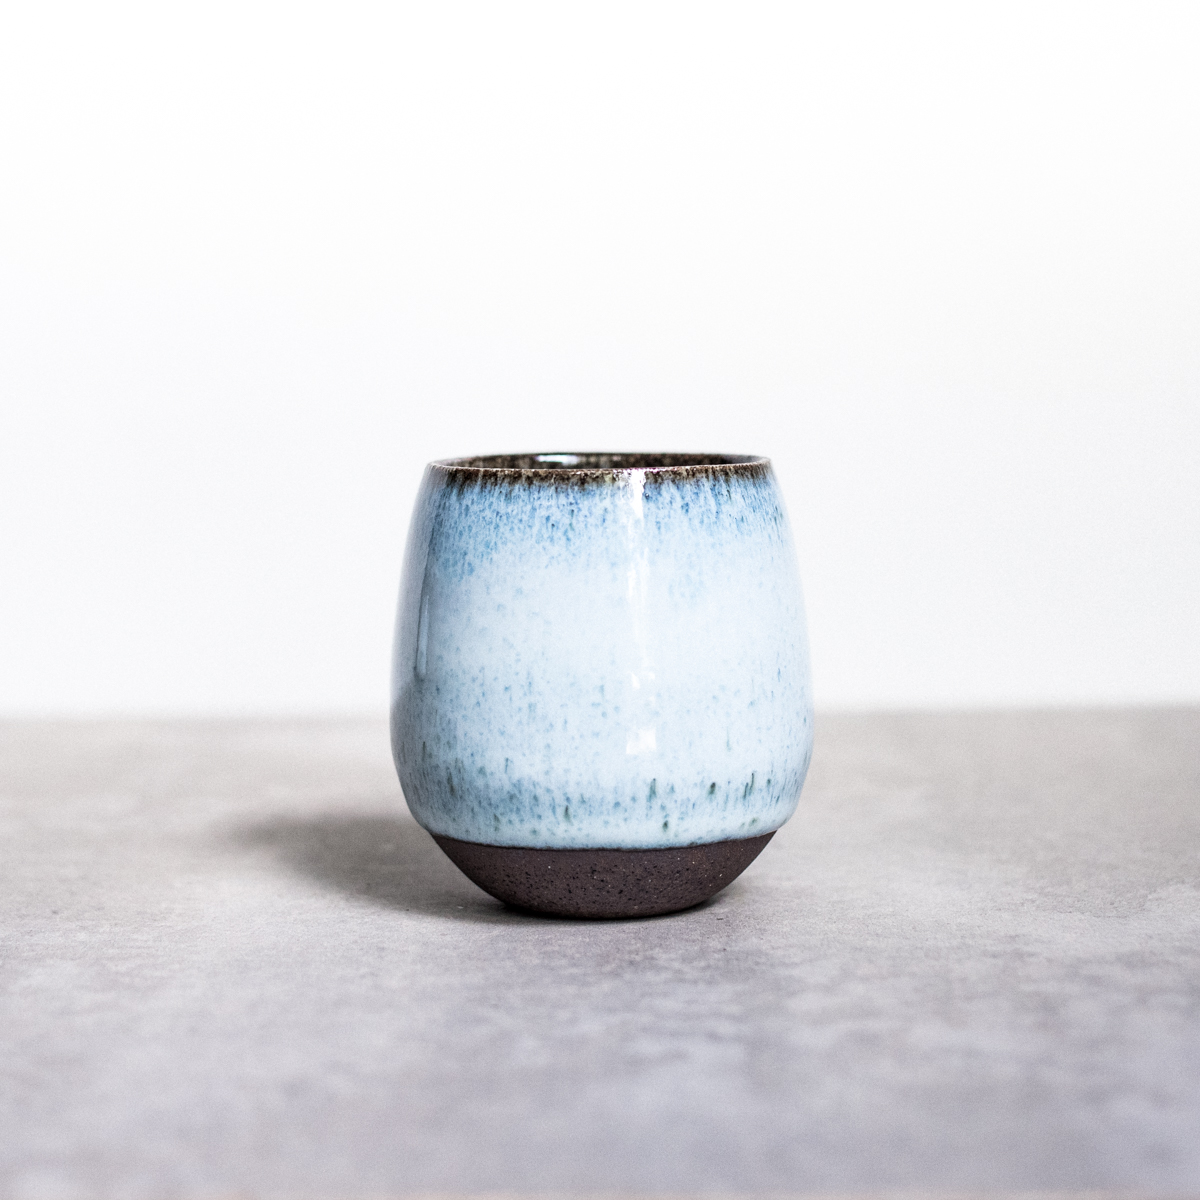 Magnolia_mountain_reef_small_ceramic_tumbler.jpg